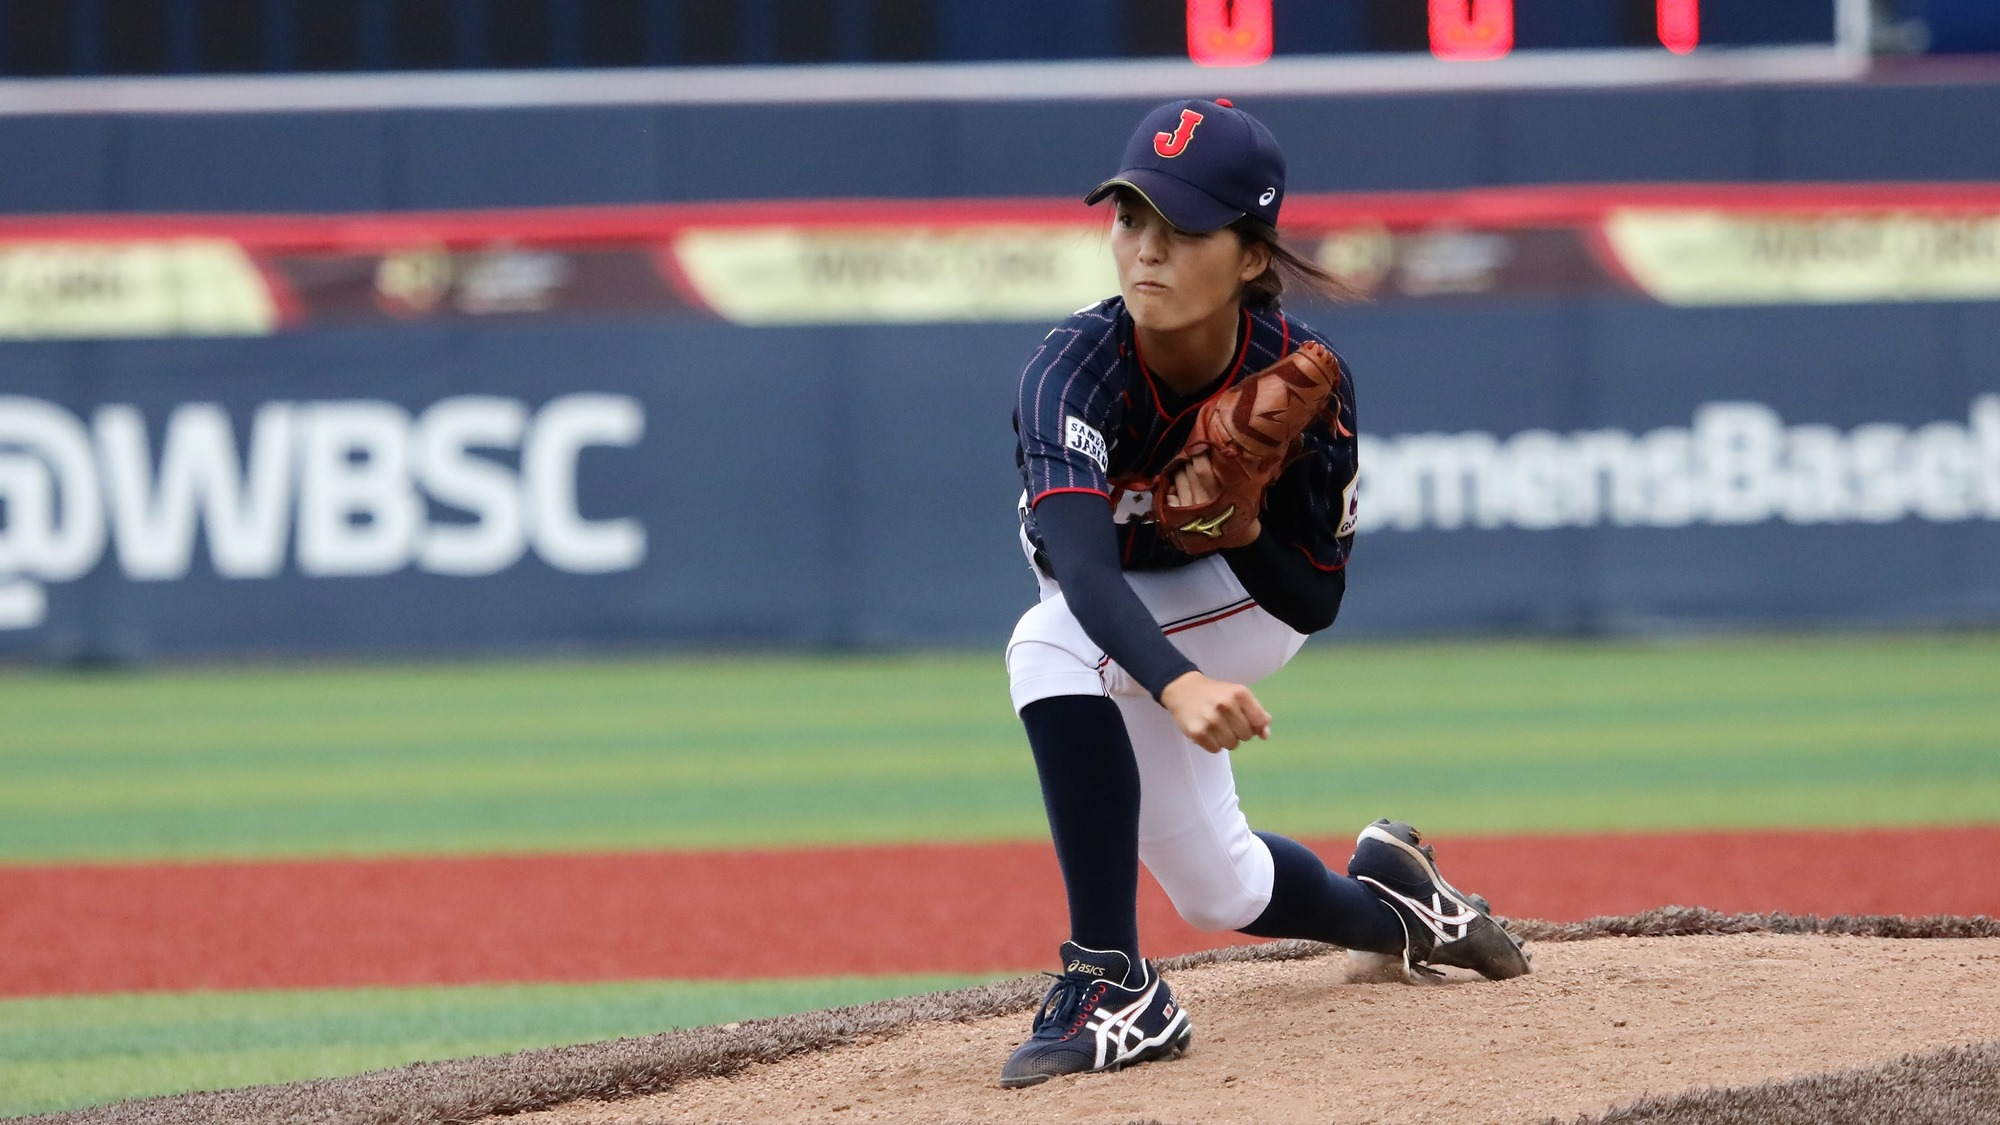 Amy Sakahara pitched six innings for Japan against Cuba